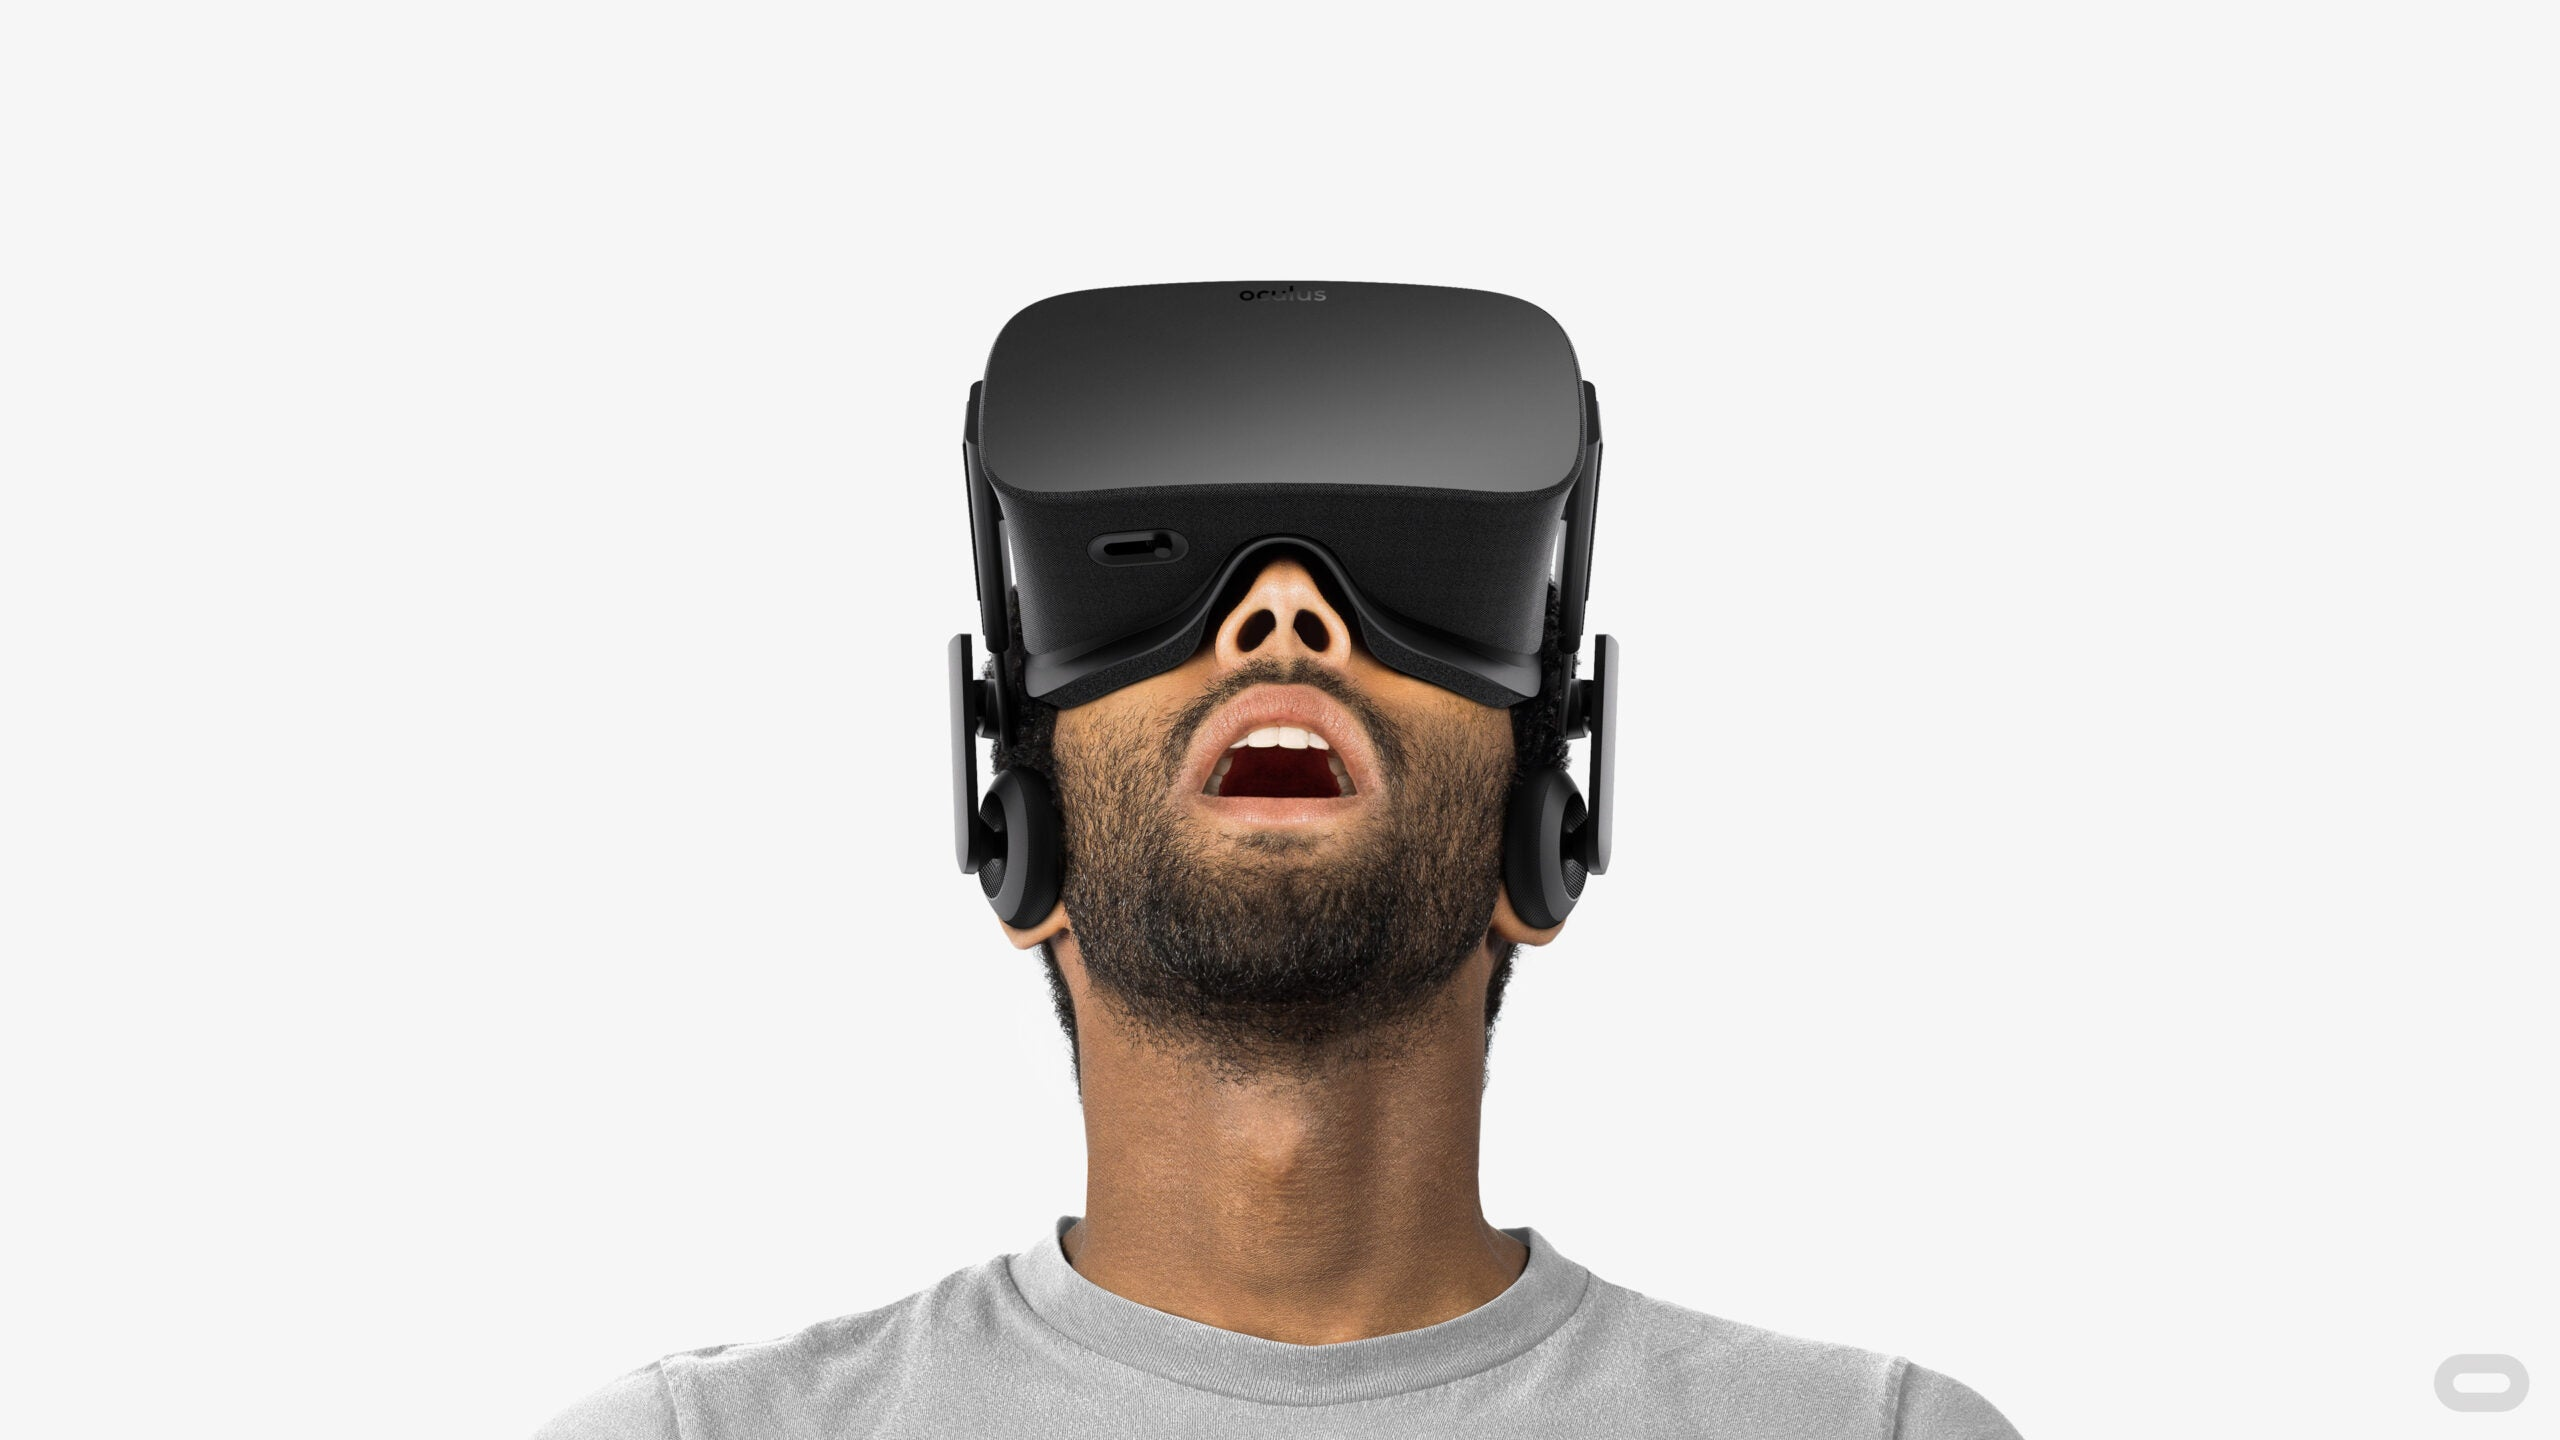 Oculus Wants To Take Over Gaming With Virtual Reality